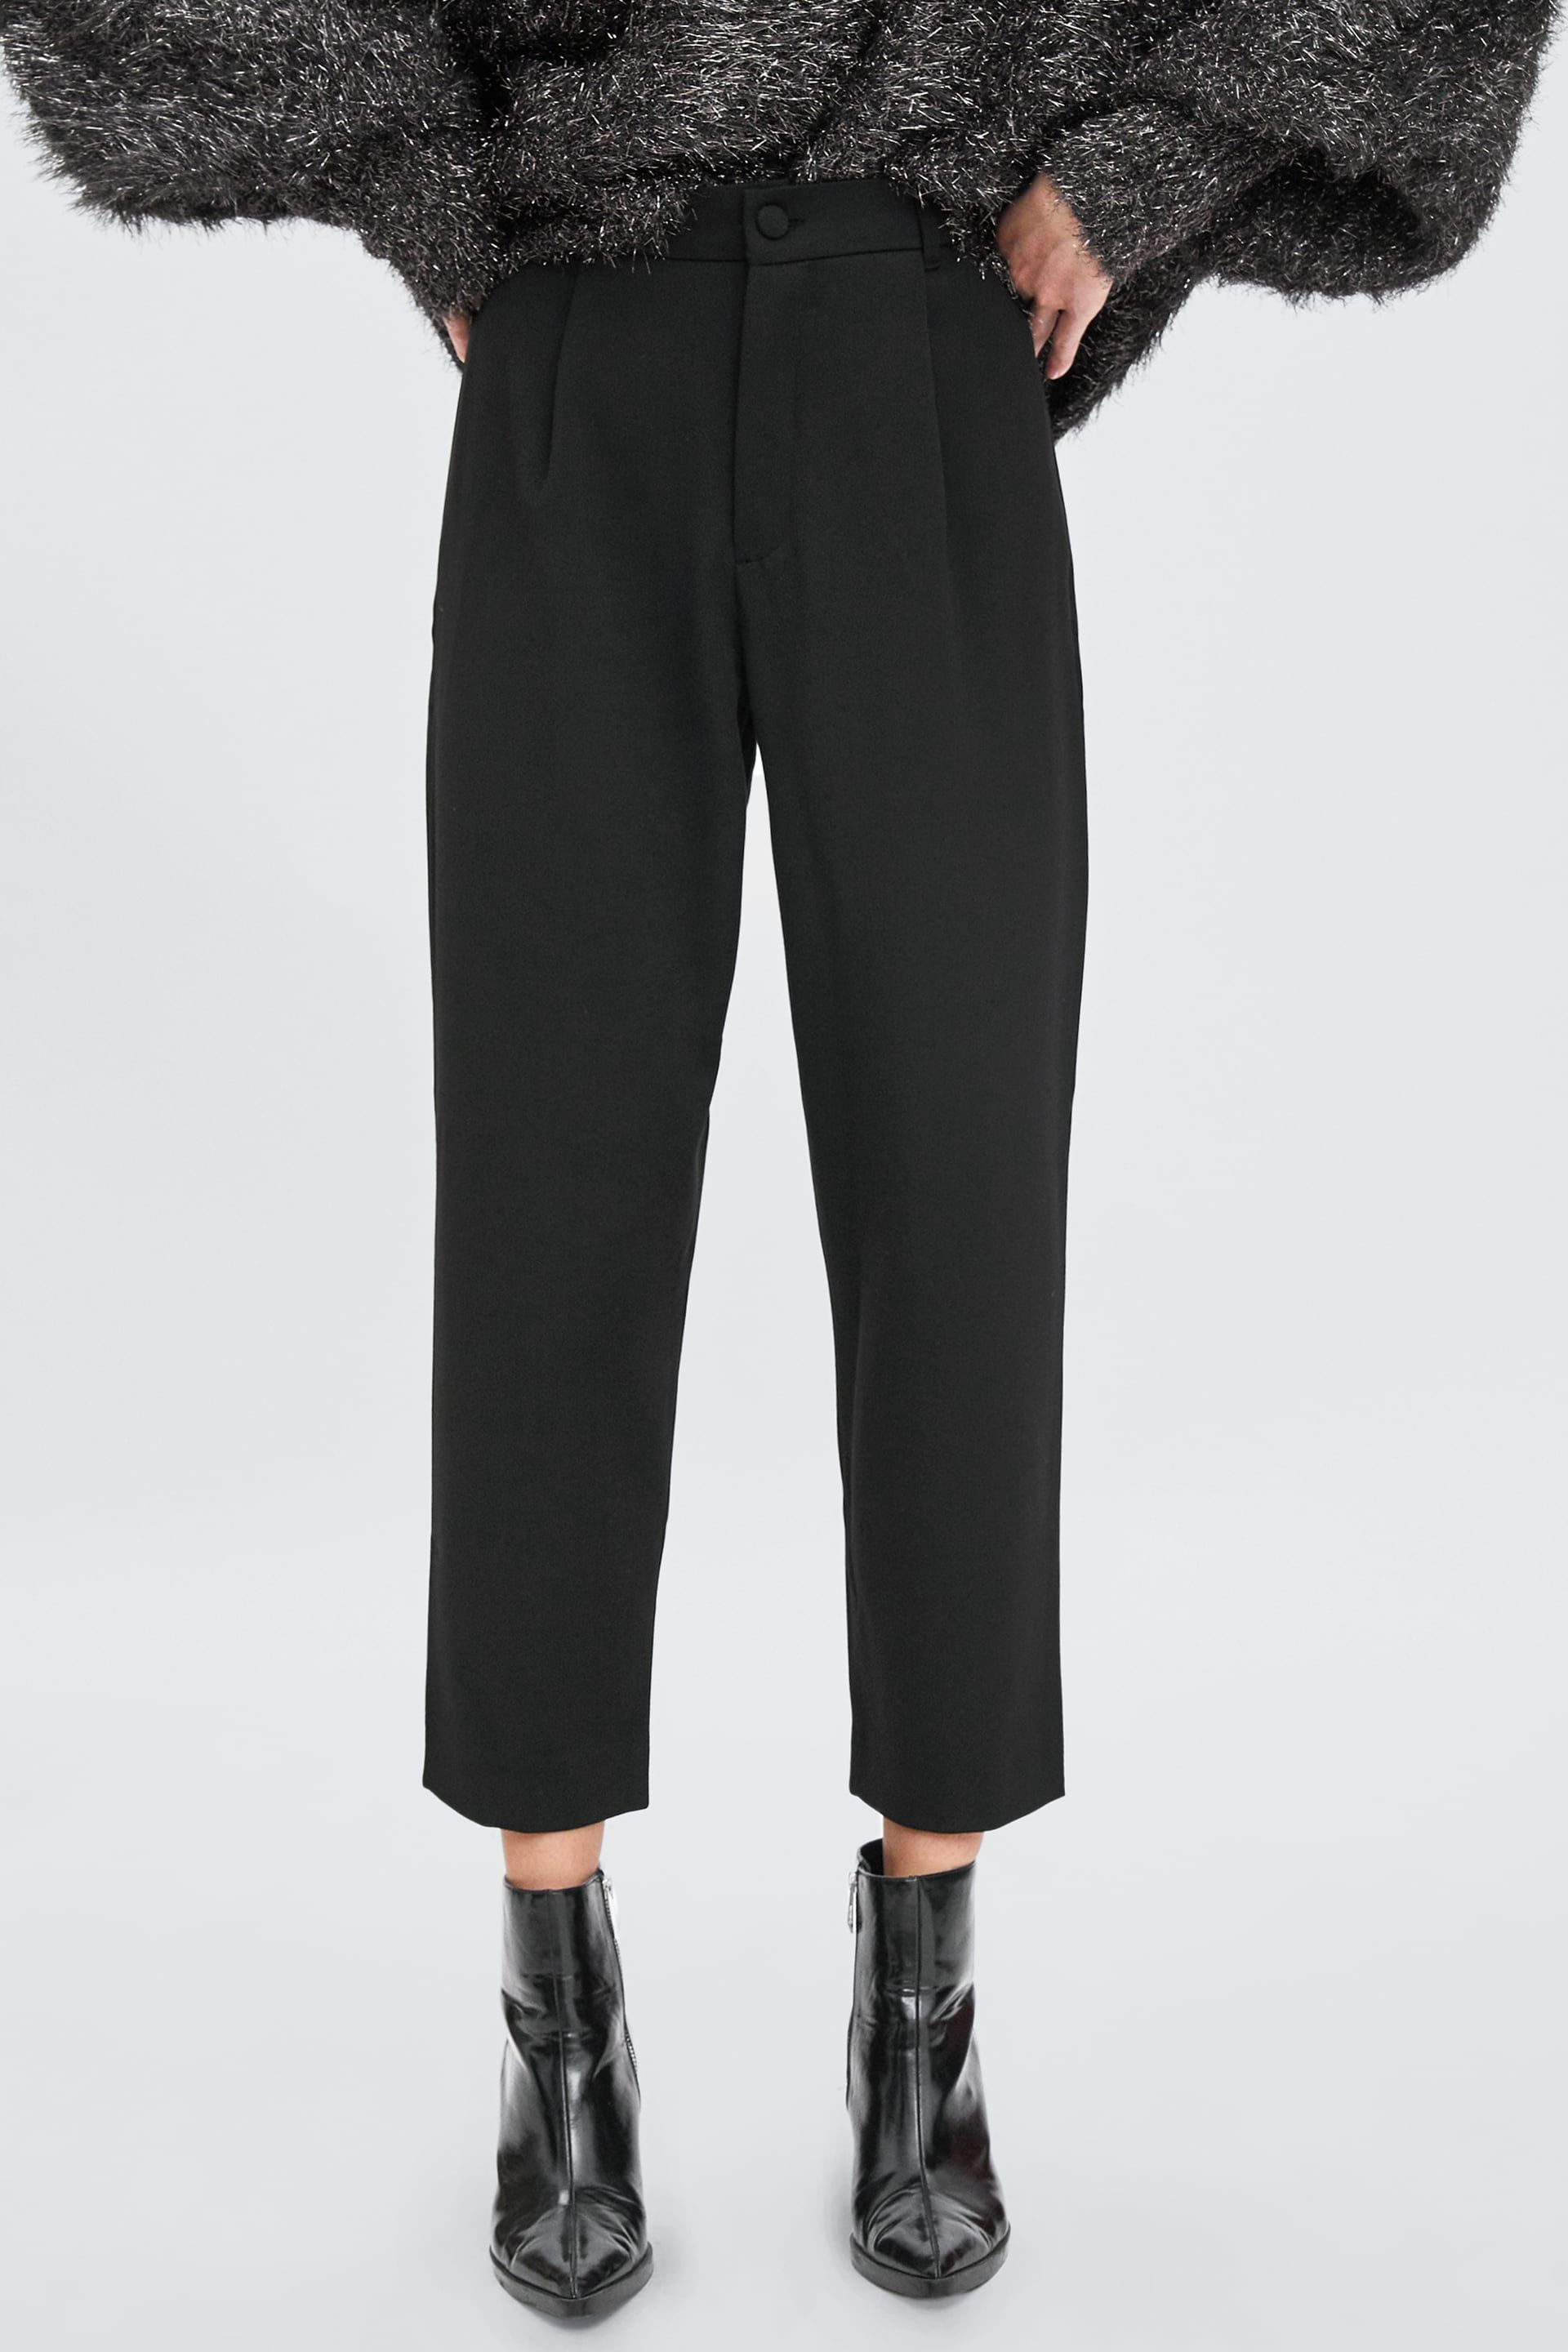 ce6389ab66 Image 2 of HIGH WAISTED CHINO PANTS from Zara   Wish List. in 2019 ...